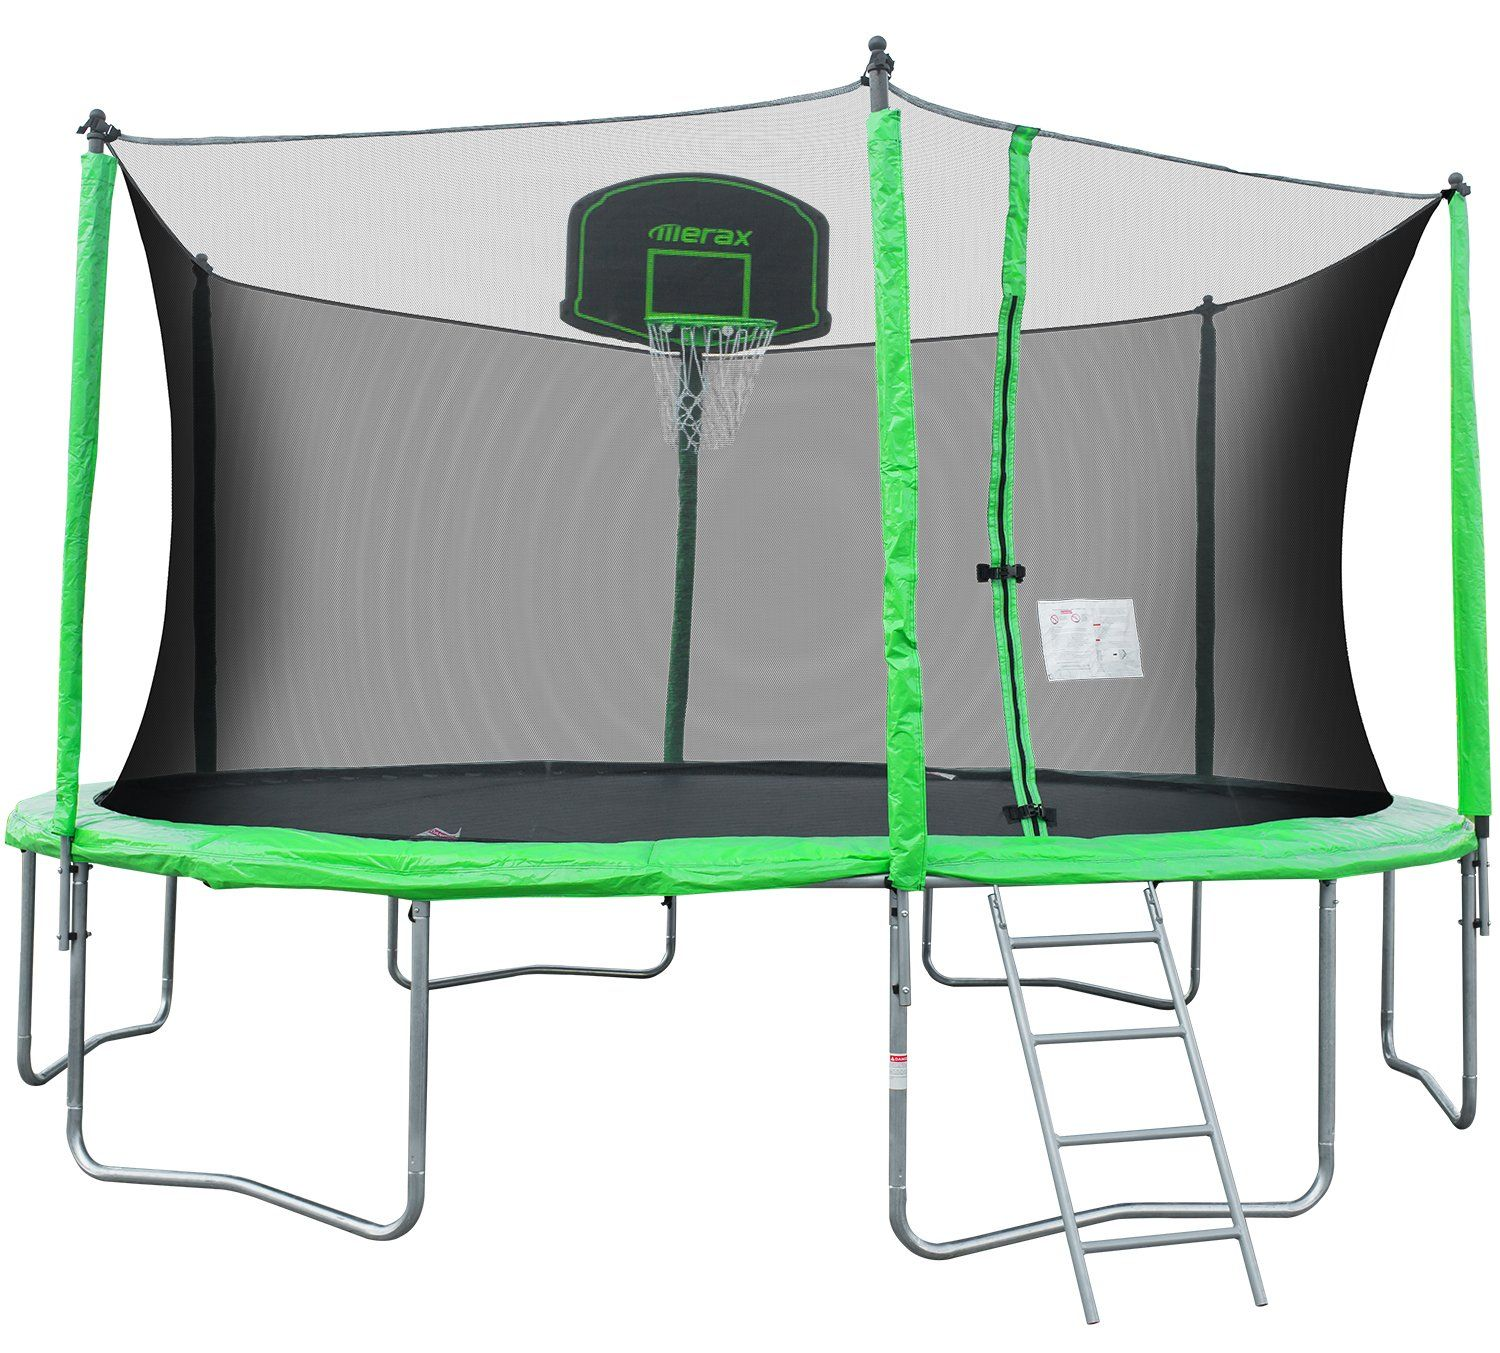 merax 14 u0027 trampoline with basketball hoop safety enclosure and